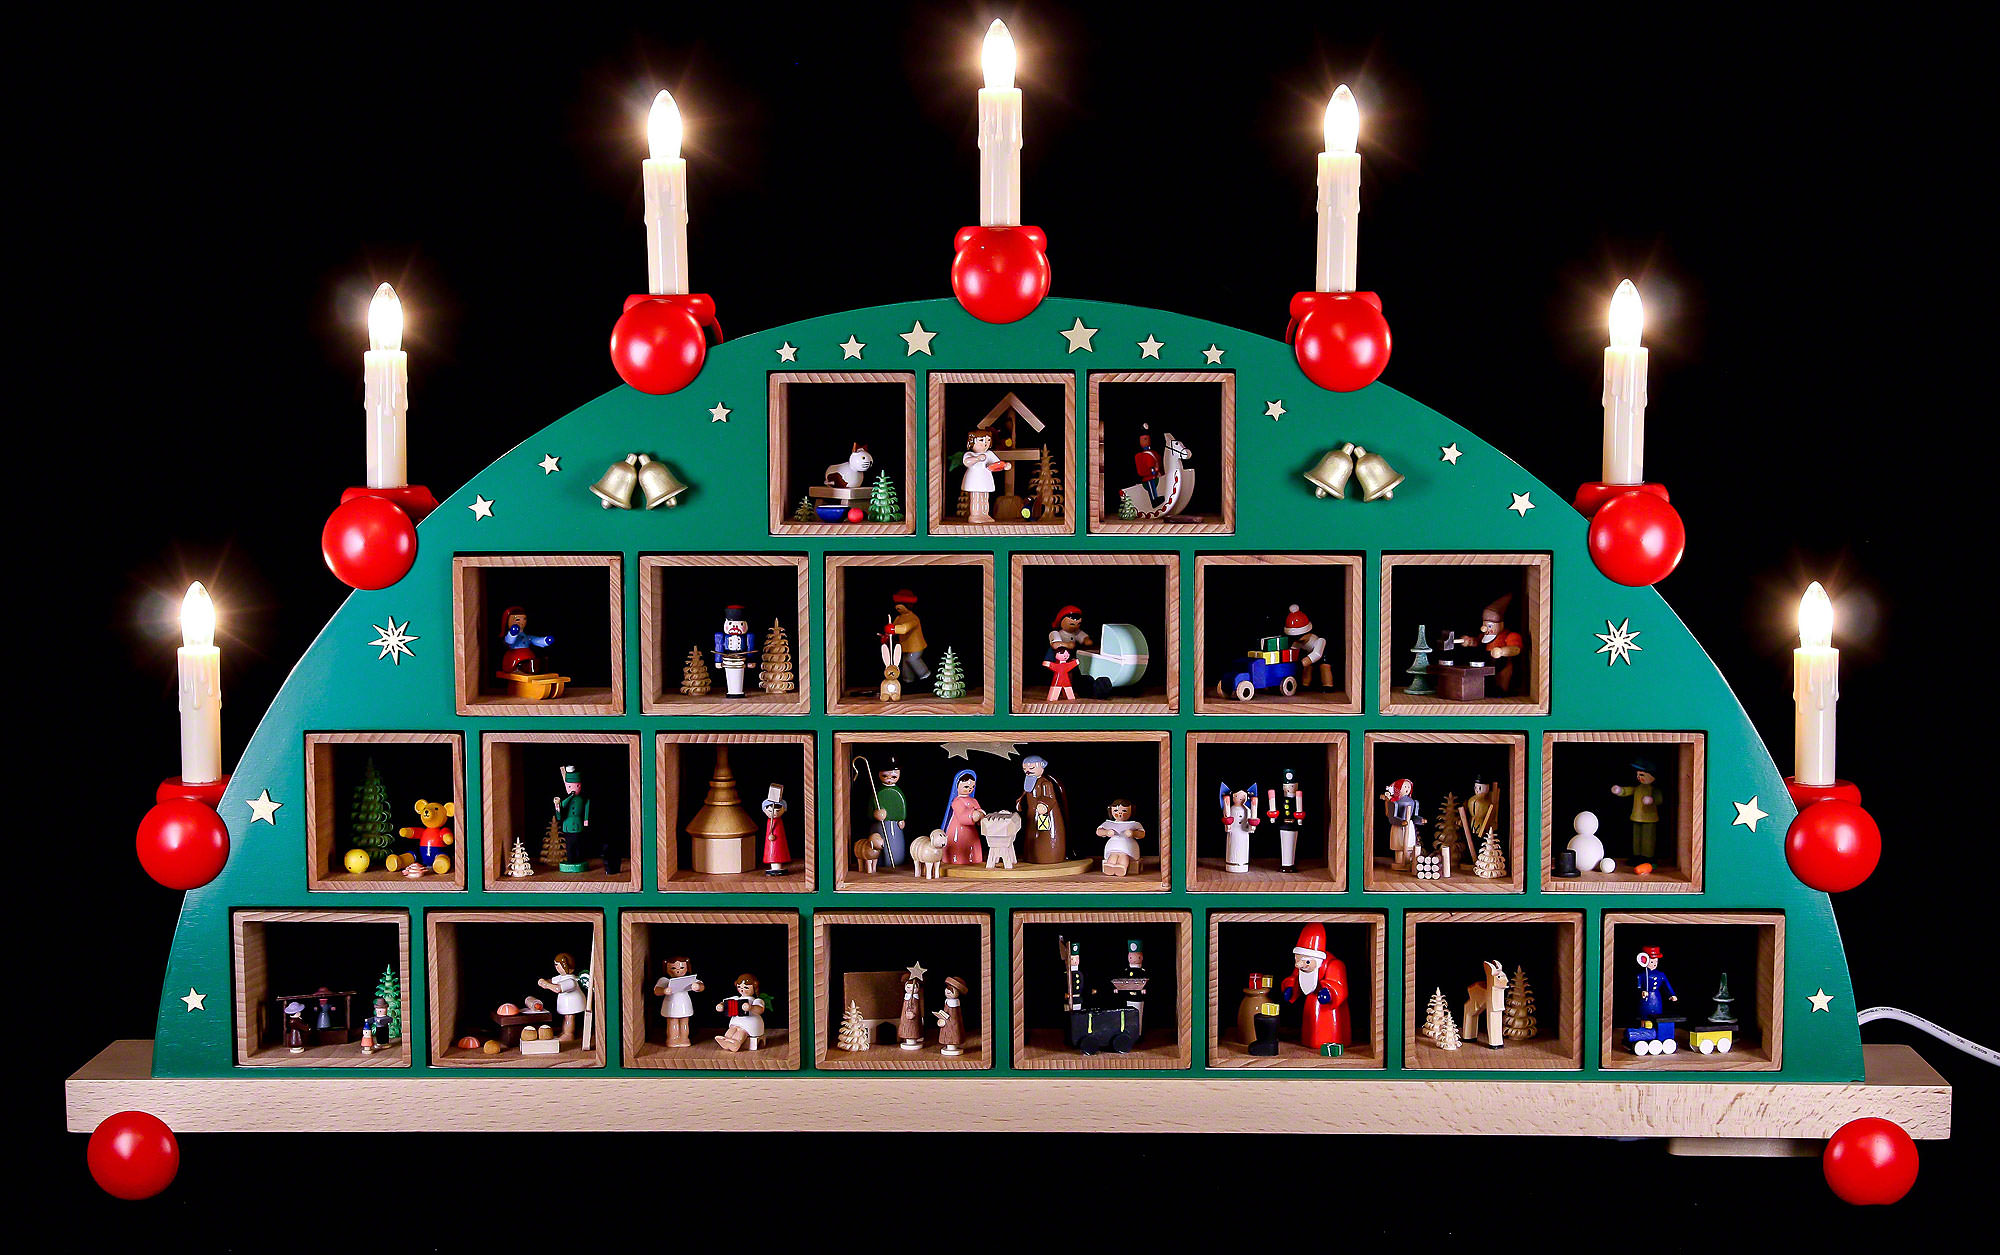 candle arch advent calendar 48x76cm 19x30in ch by richard gl sser. Black Bedroom Furniture Sets. Home Design Ideas